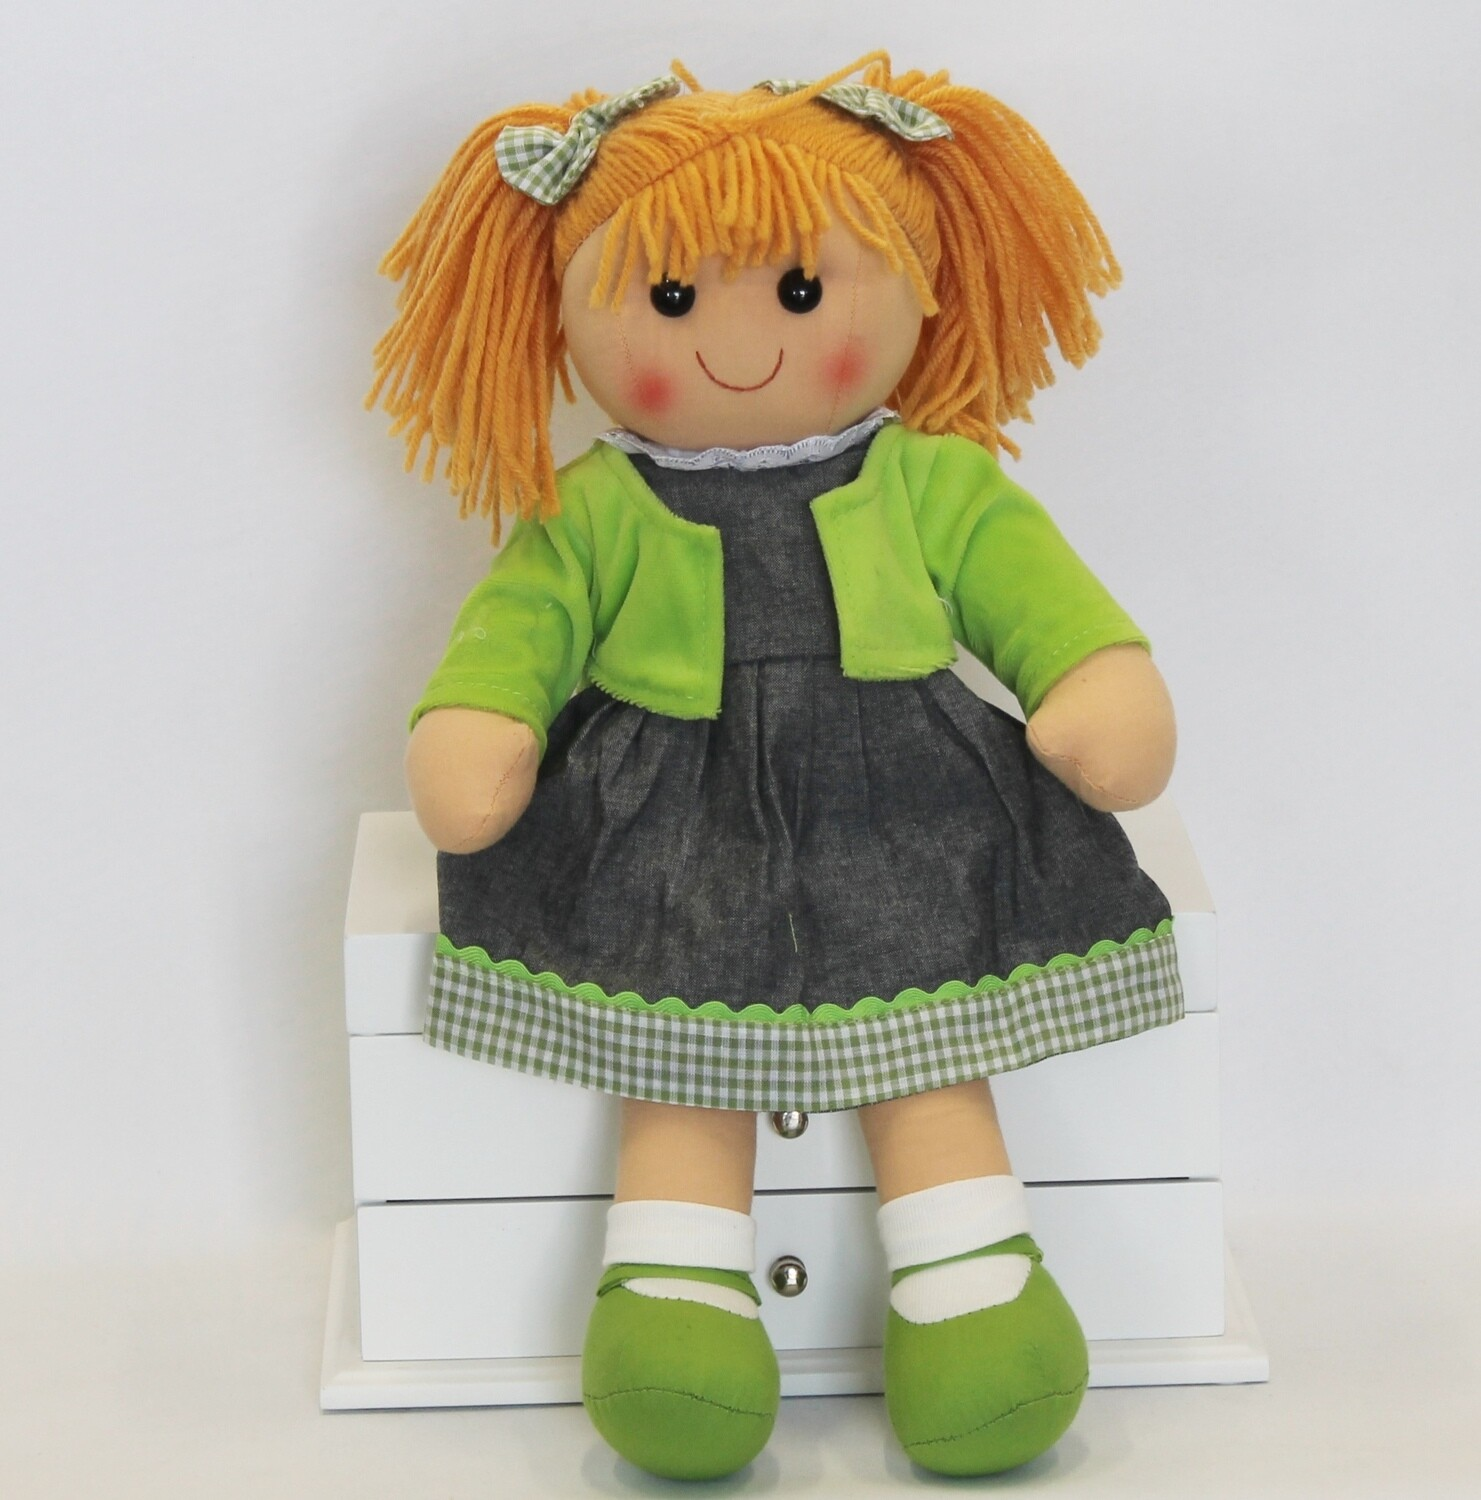 Collectable Doll - Stella